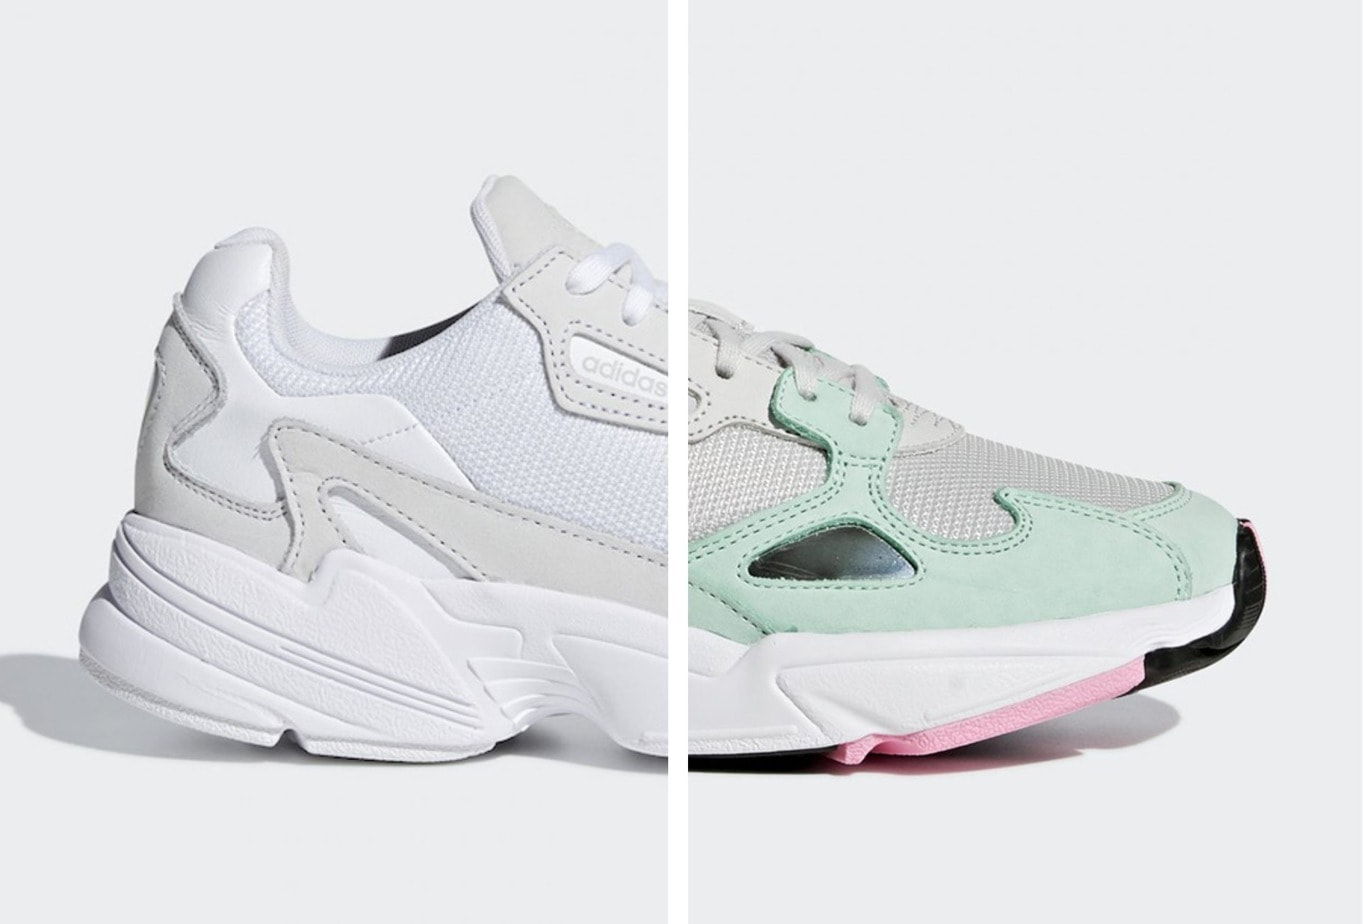 8fcbae4584c The adidas Falcon is making waves this year. First released earlier this  Summer as a women s exclusive